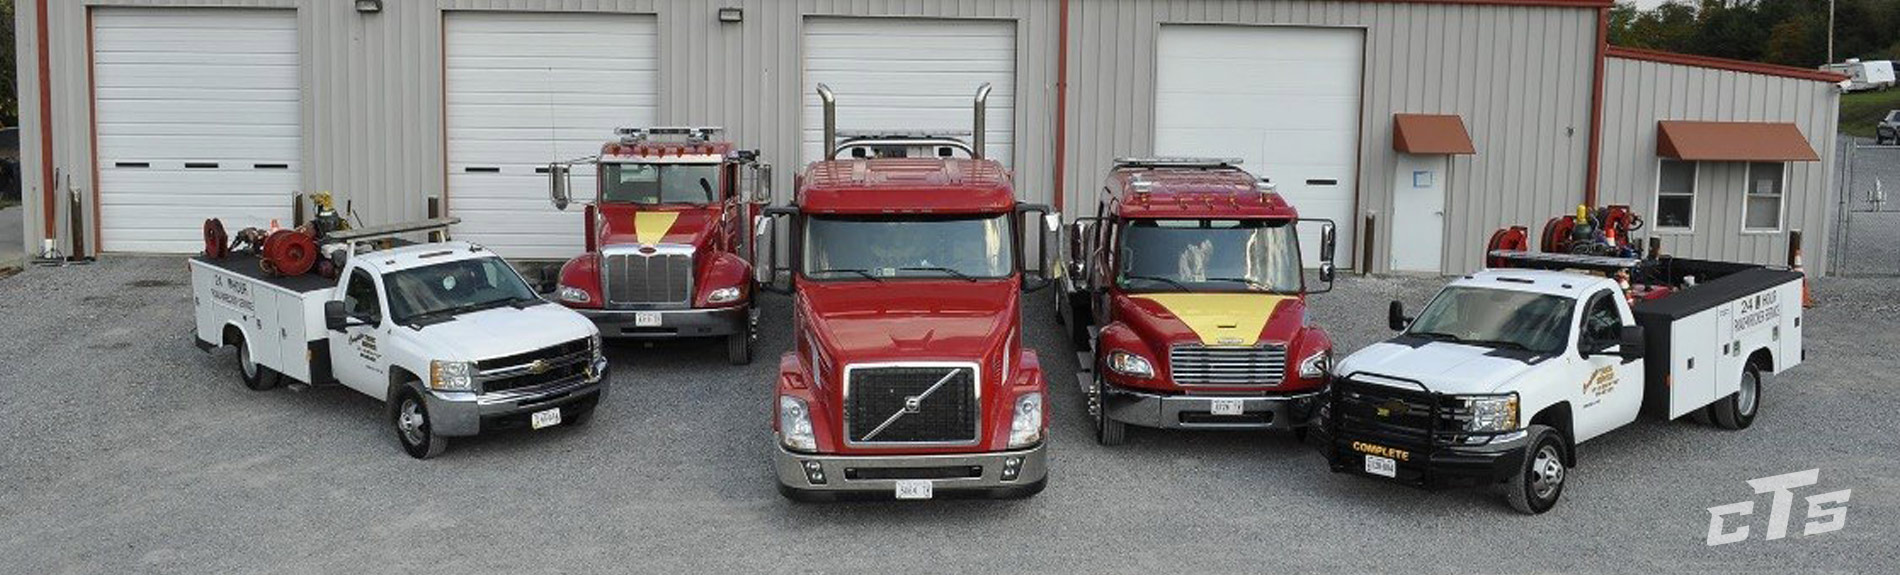 Heavy Towing and Truck Services in Wytheville, VA